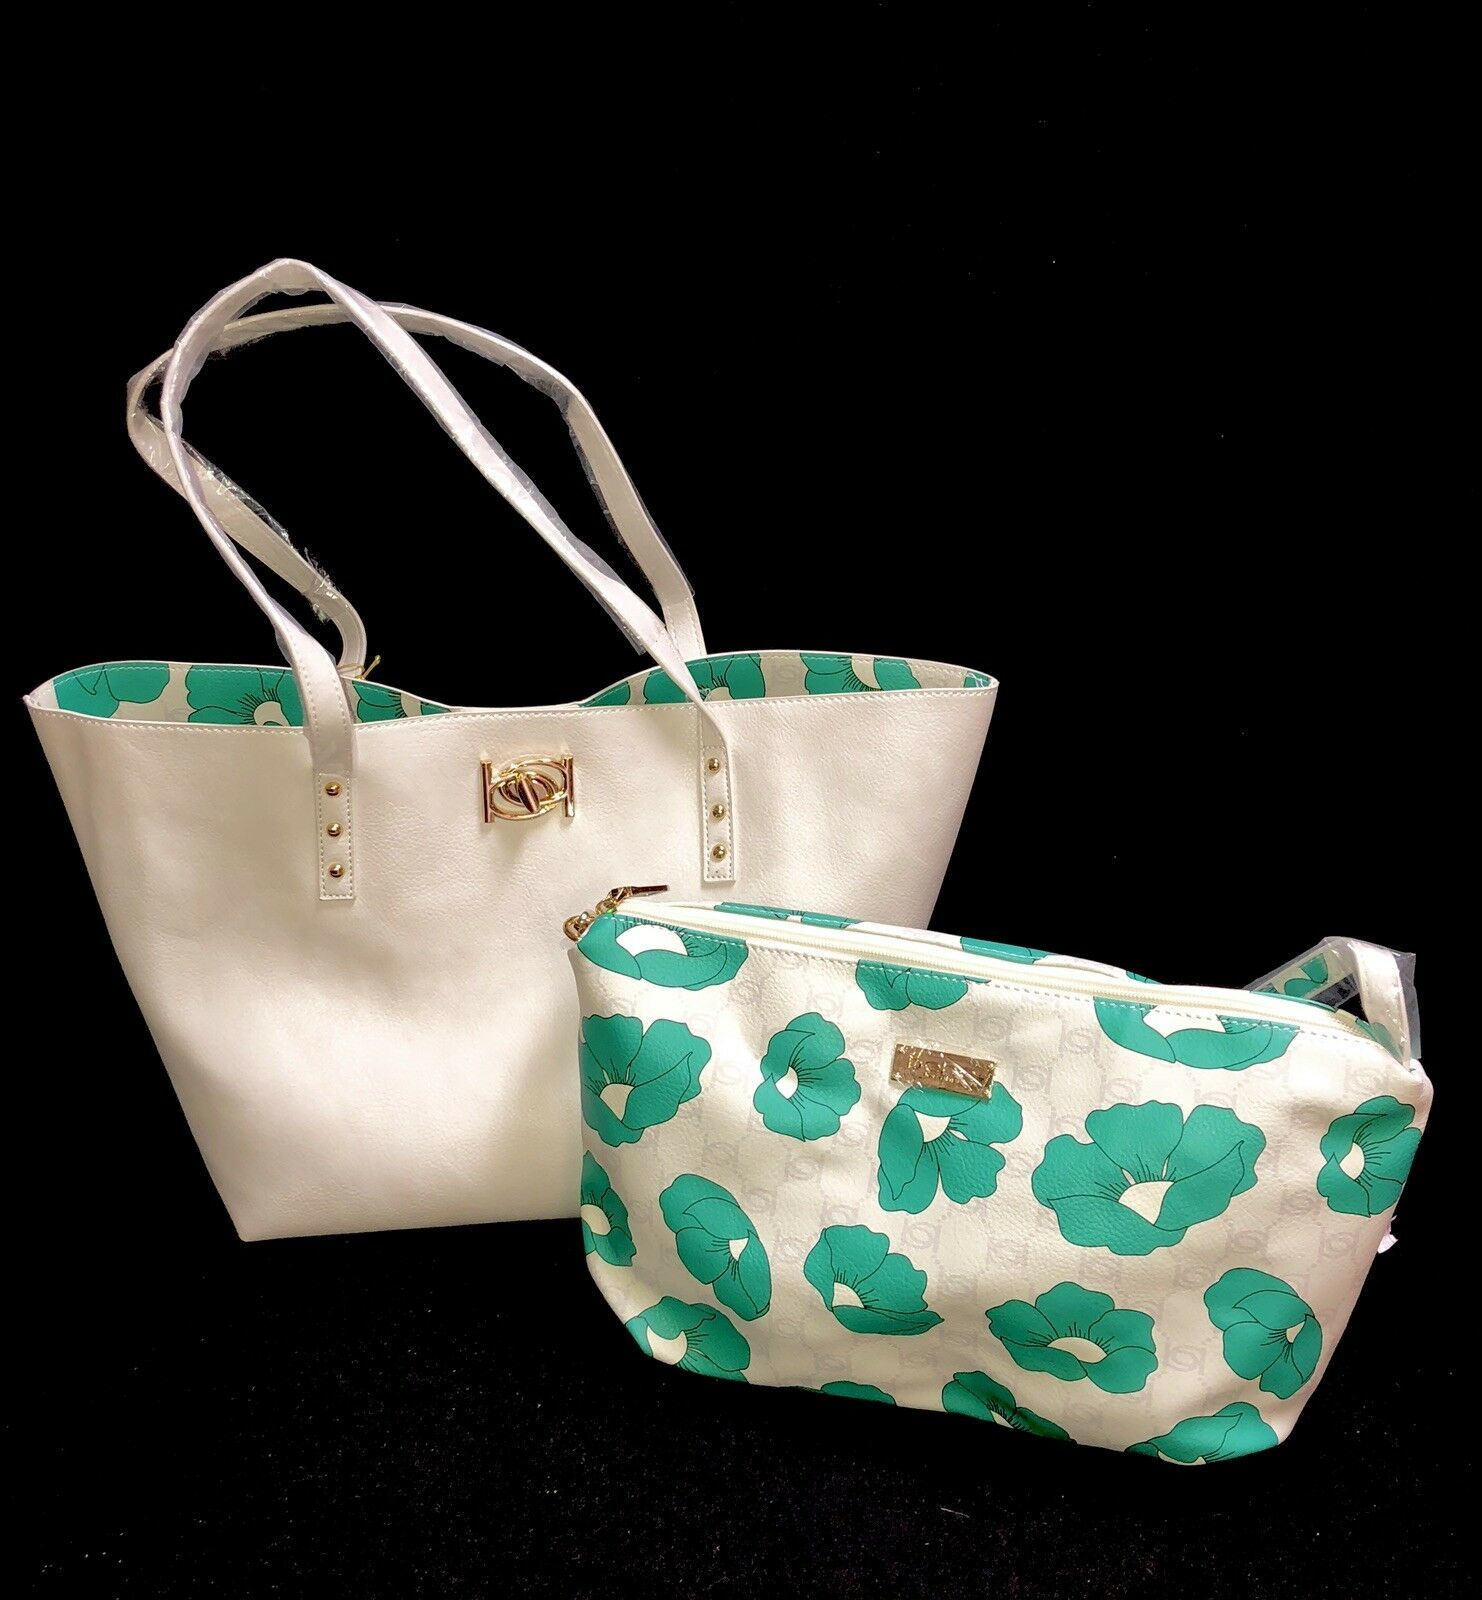 Primary image for bebe Large Purse Tote Shopper With Cosmetic Bag Reversible White Floral Green